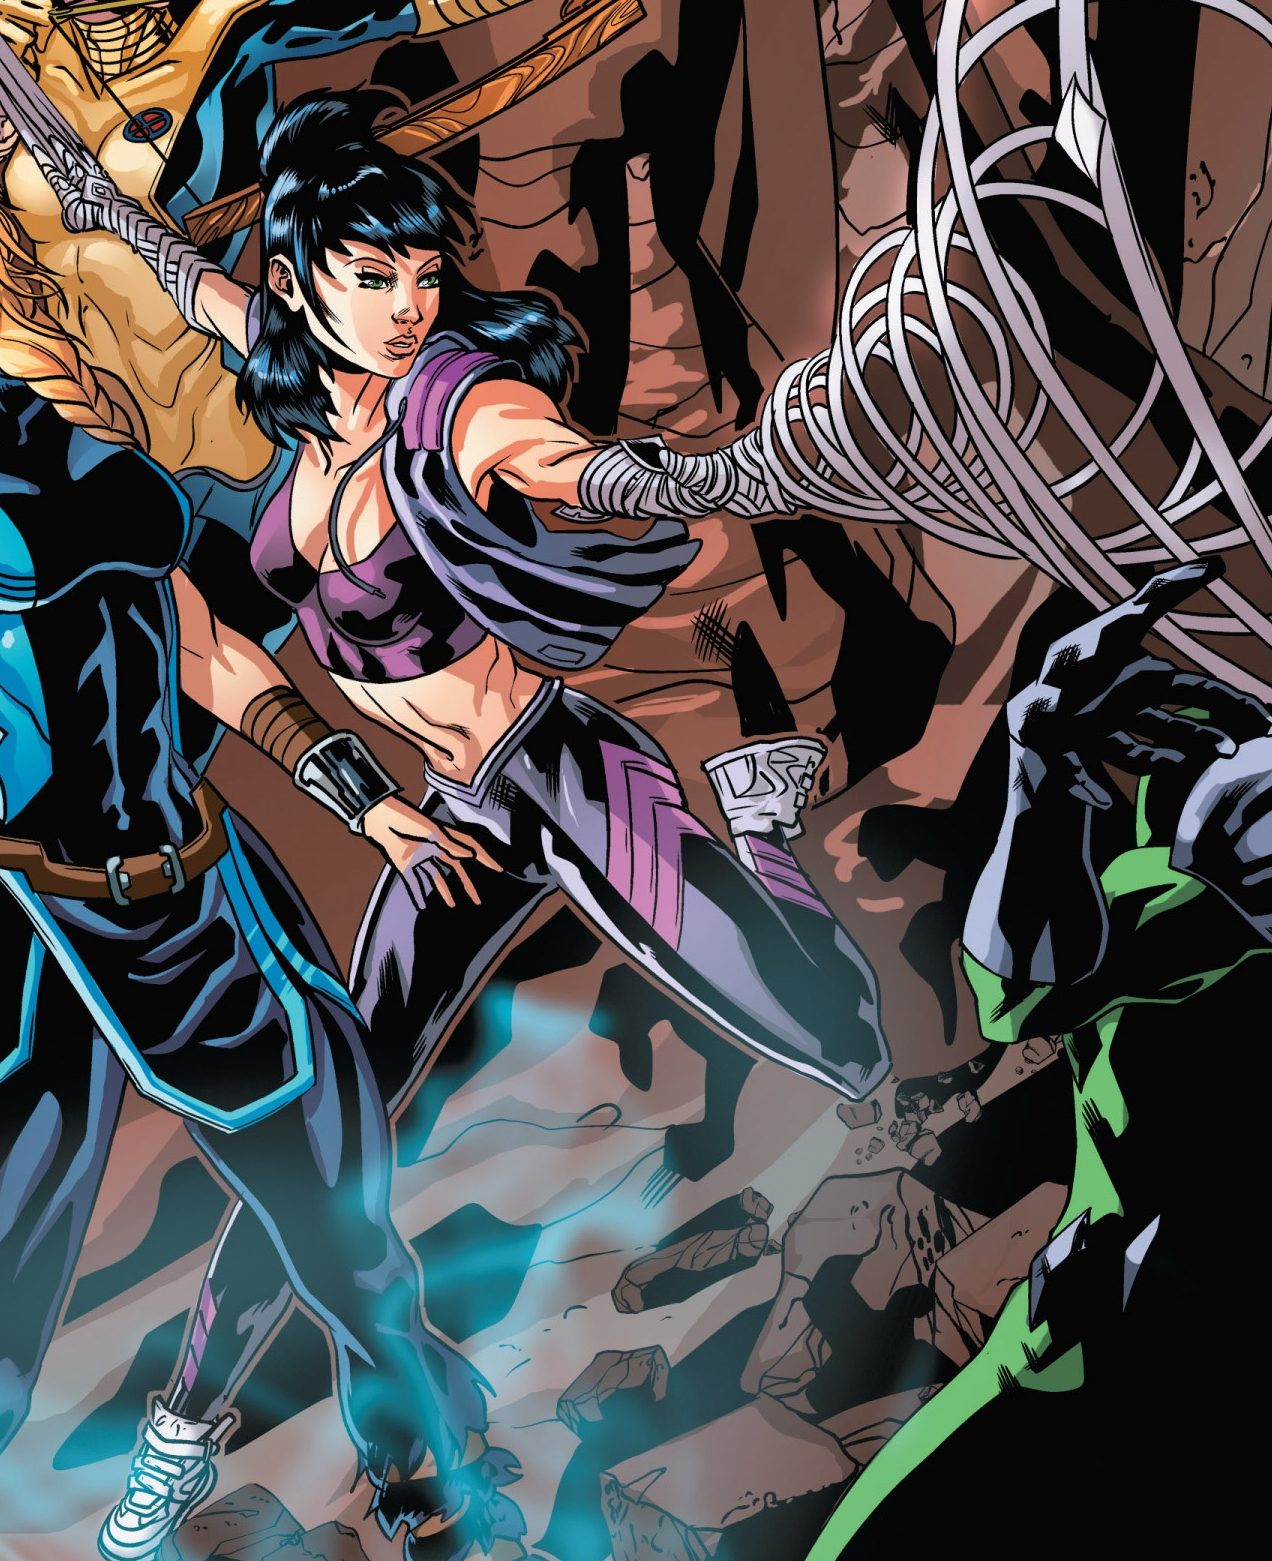 Depiction of Ren using her Inhuman ability. Ren is a lesbian Inhuman in the Marvel Universe.